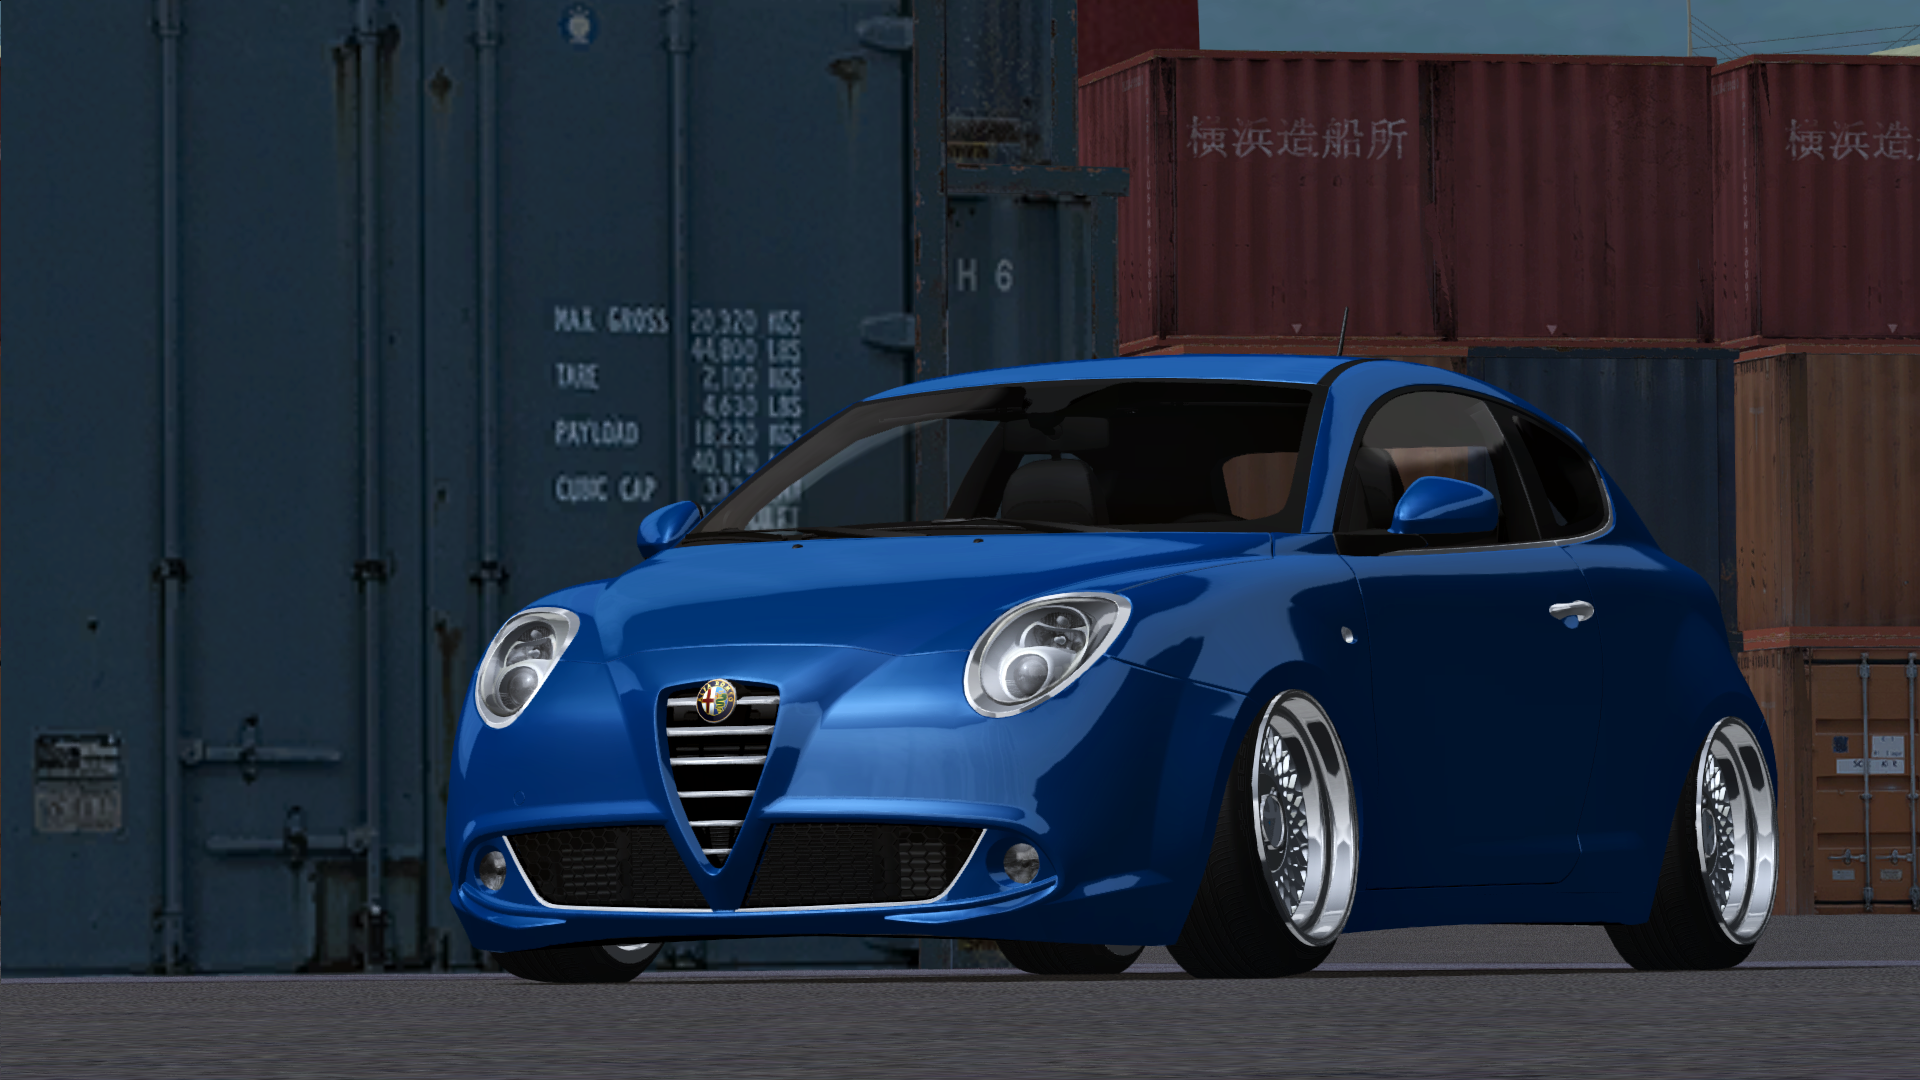 Downloads / Street Legal Racing / Unfinished/Betas/Alphas / Alfa MiTo